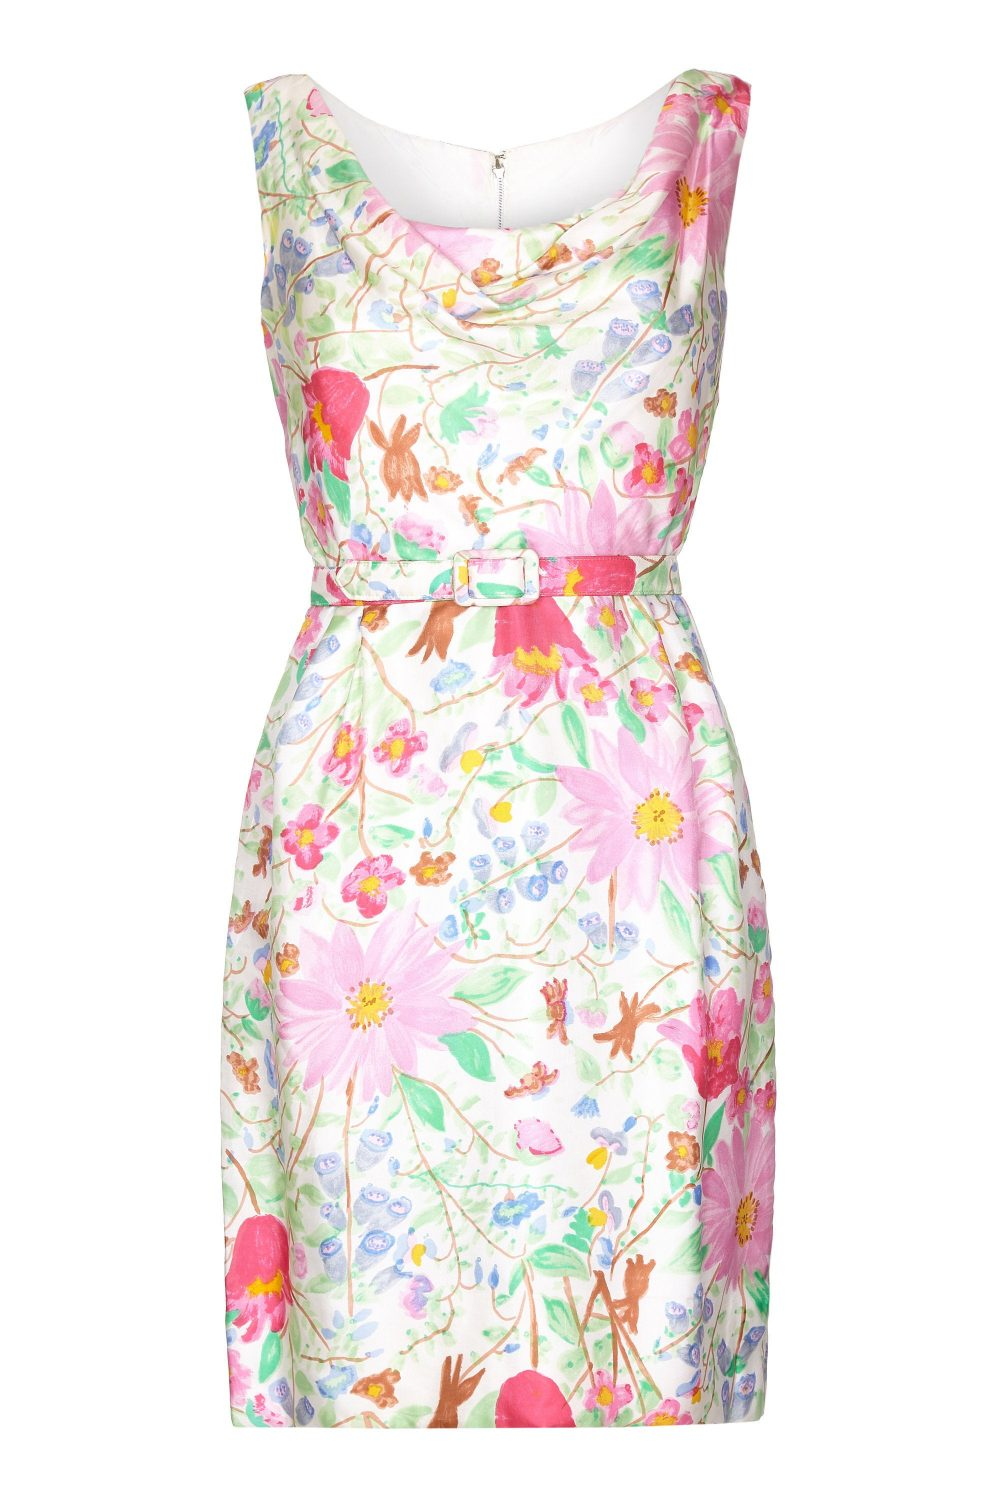 Jeunesse 1960S Silk Floral Printed Dress With Matching Belt Uk Size 8-10